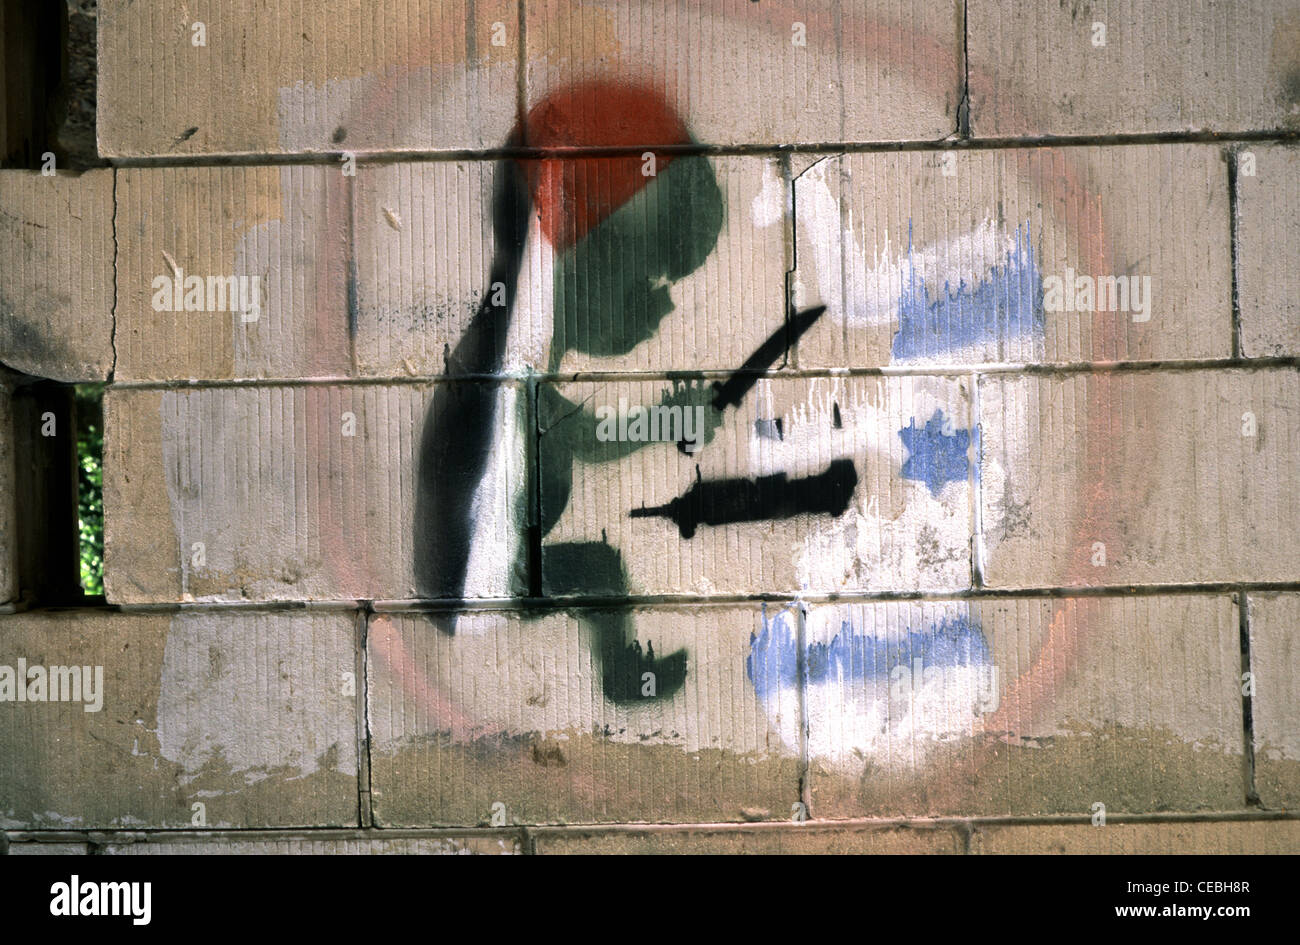 Cryptic drawing on a wall depicting Intifada conflict in Israel - Stock Image